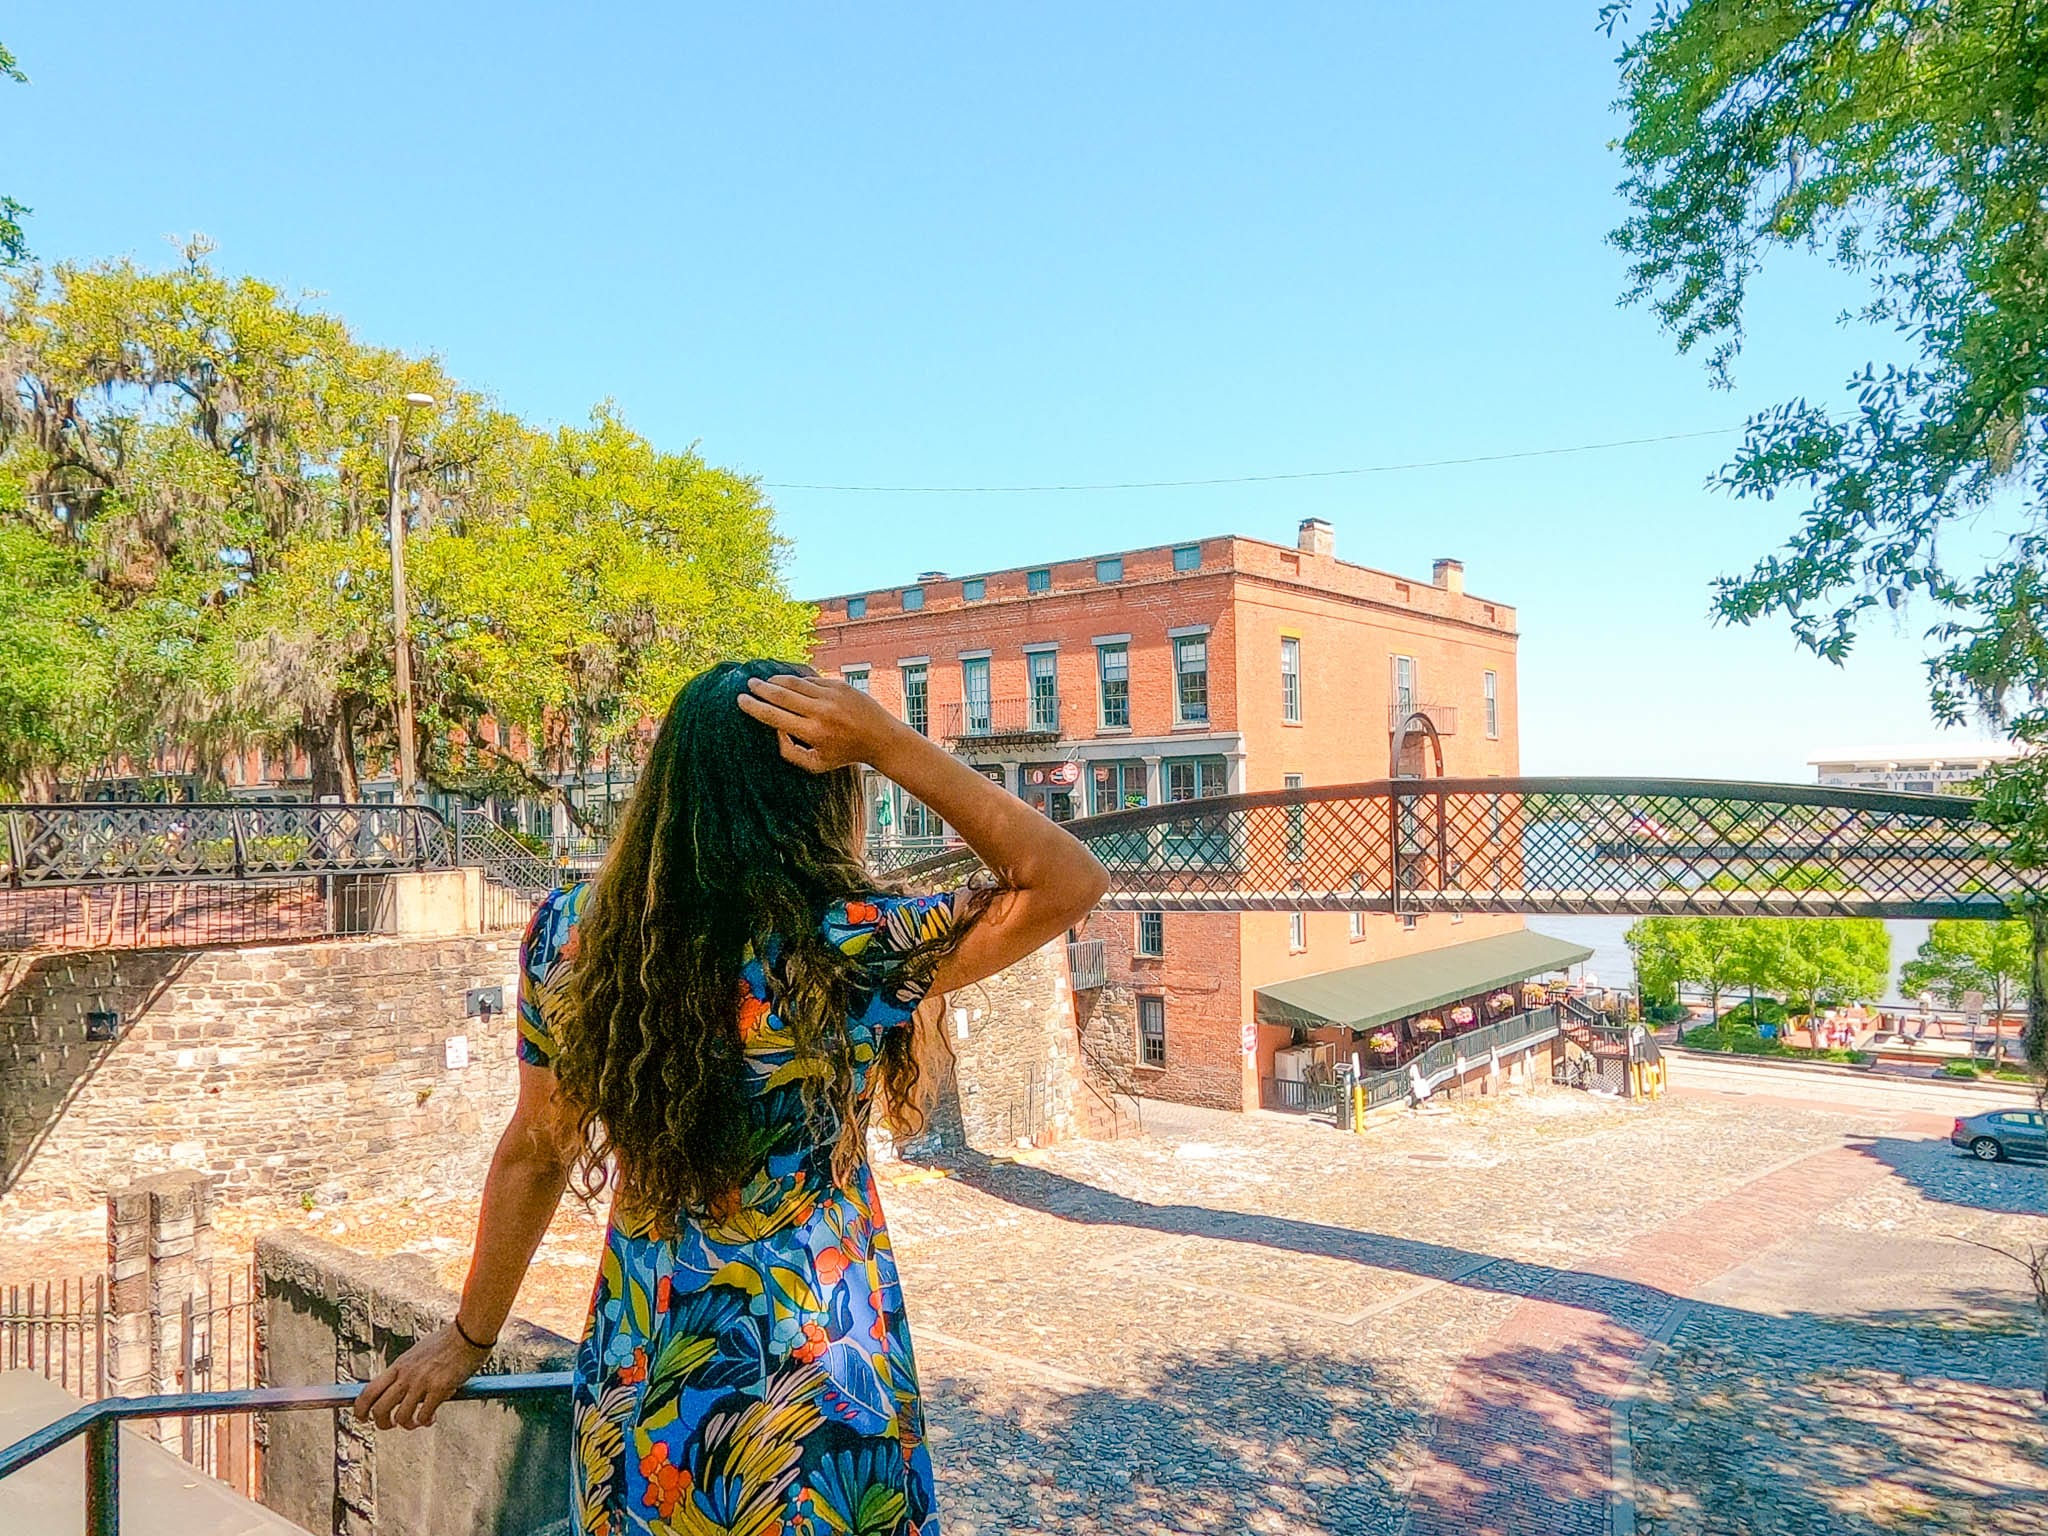 15 Fun Things to do in Savannah (Georgia) for all Budgets